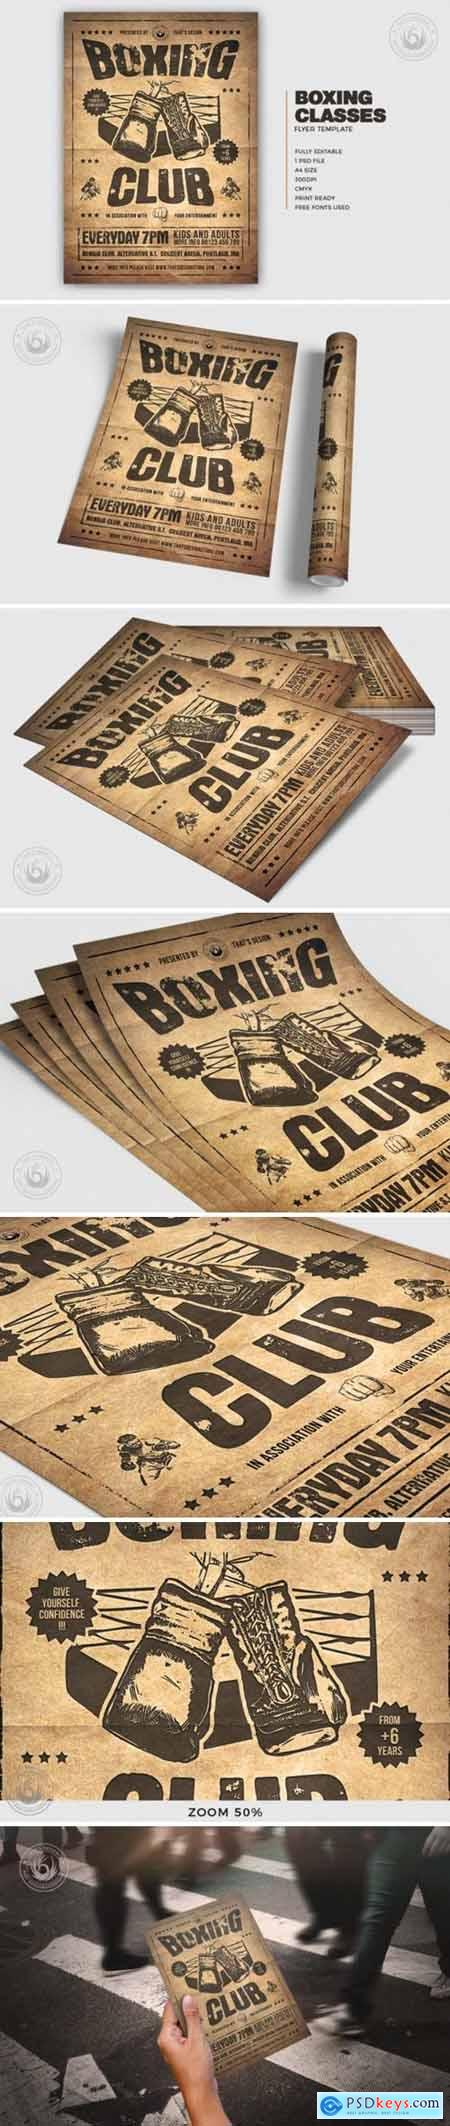 Boxing Classes Flyer Template V2 4327438